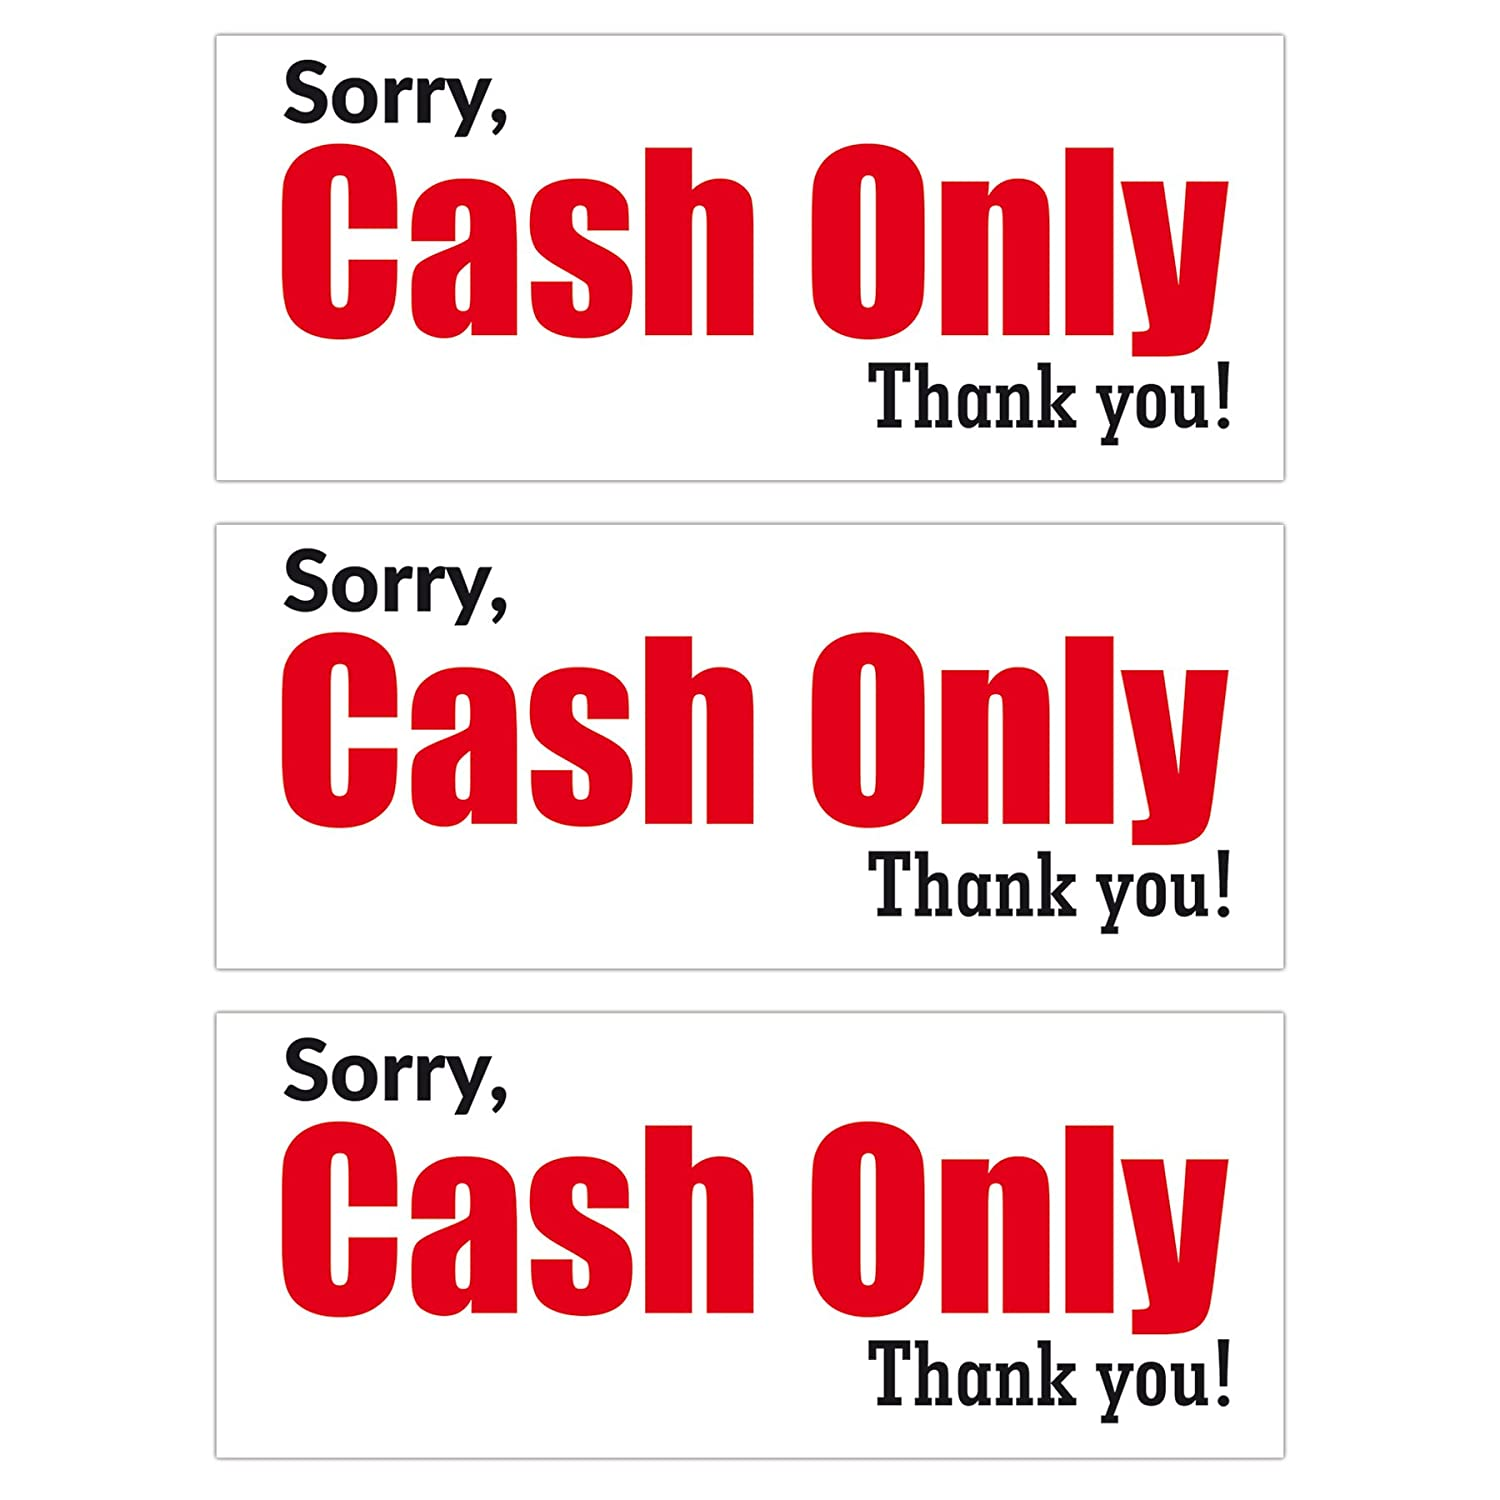 Cash Only Sign - 3 Pack - 6 x 2.5 inches - Stickers for Indoor & Outdoor Use - Ideal for Stores, Shops, Restaurants, Cafes